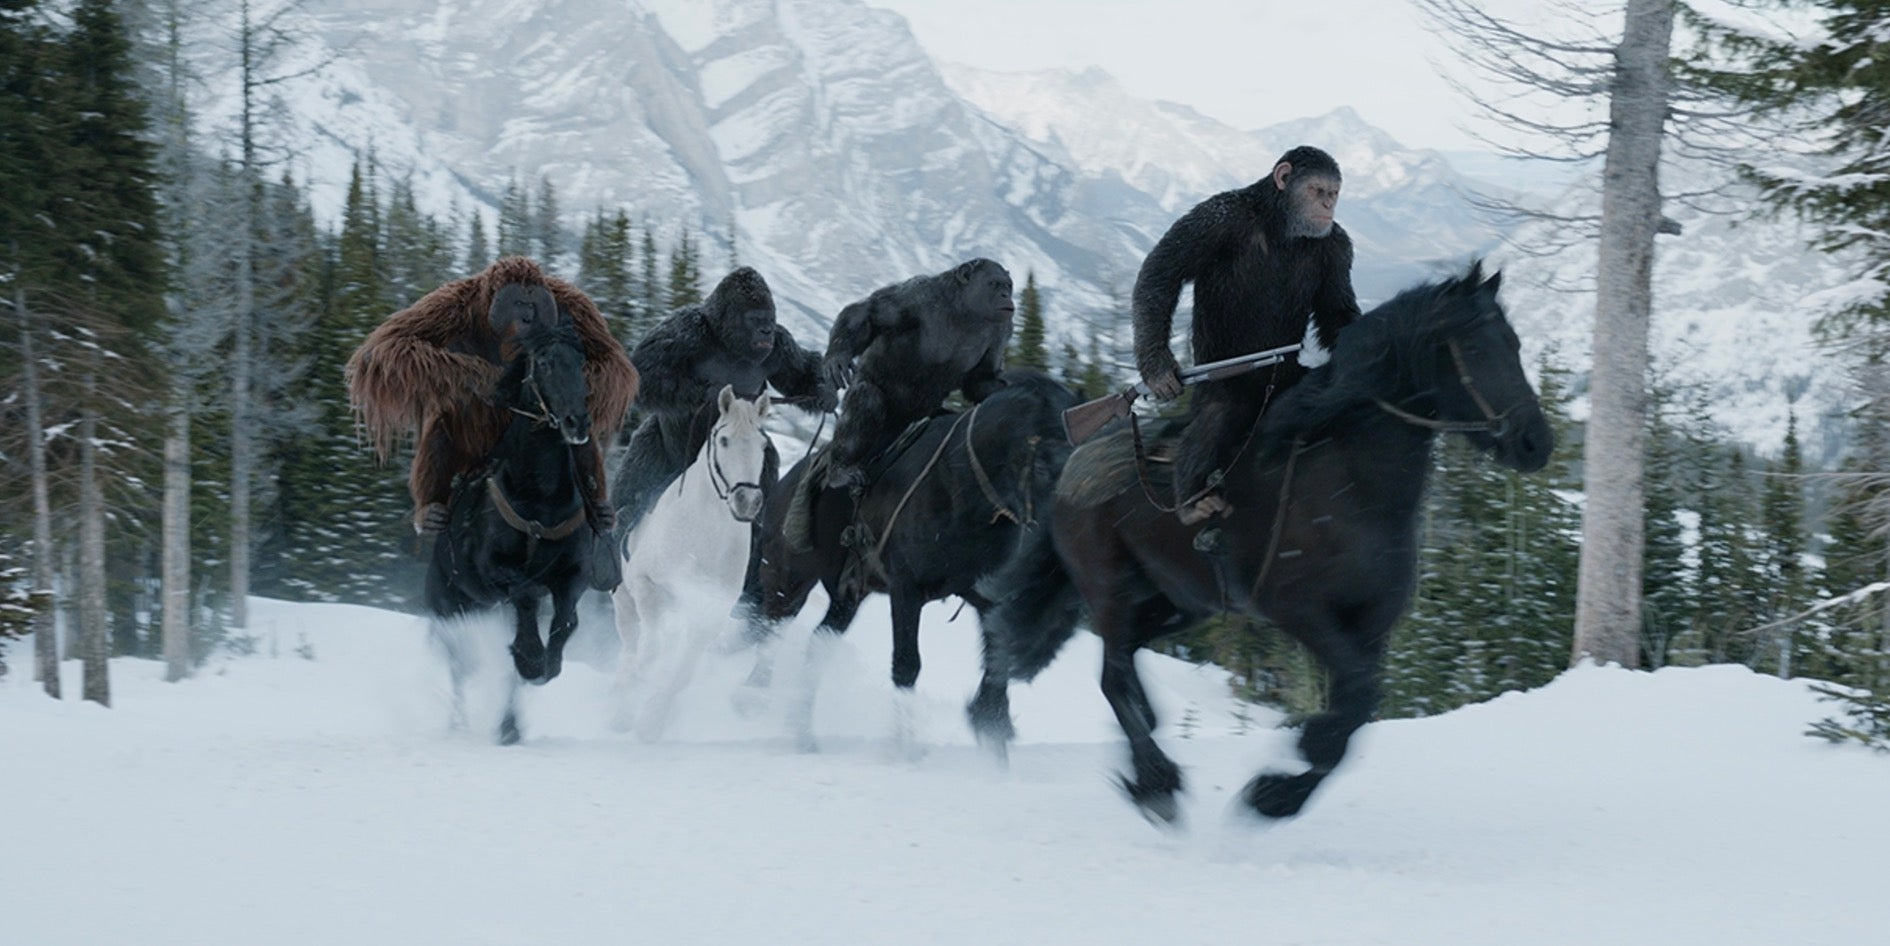 New War for the Planet of the Apes ads & featurettes released